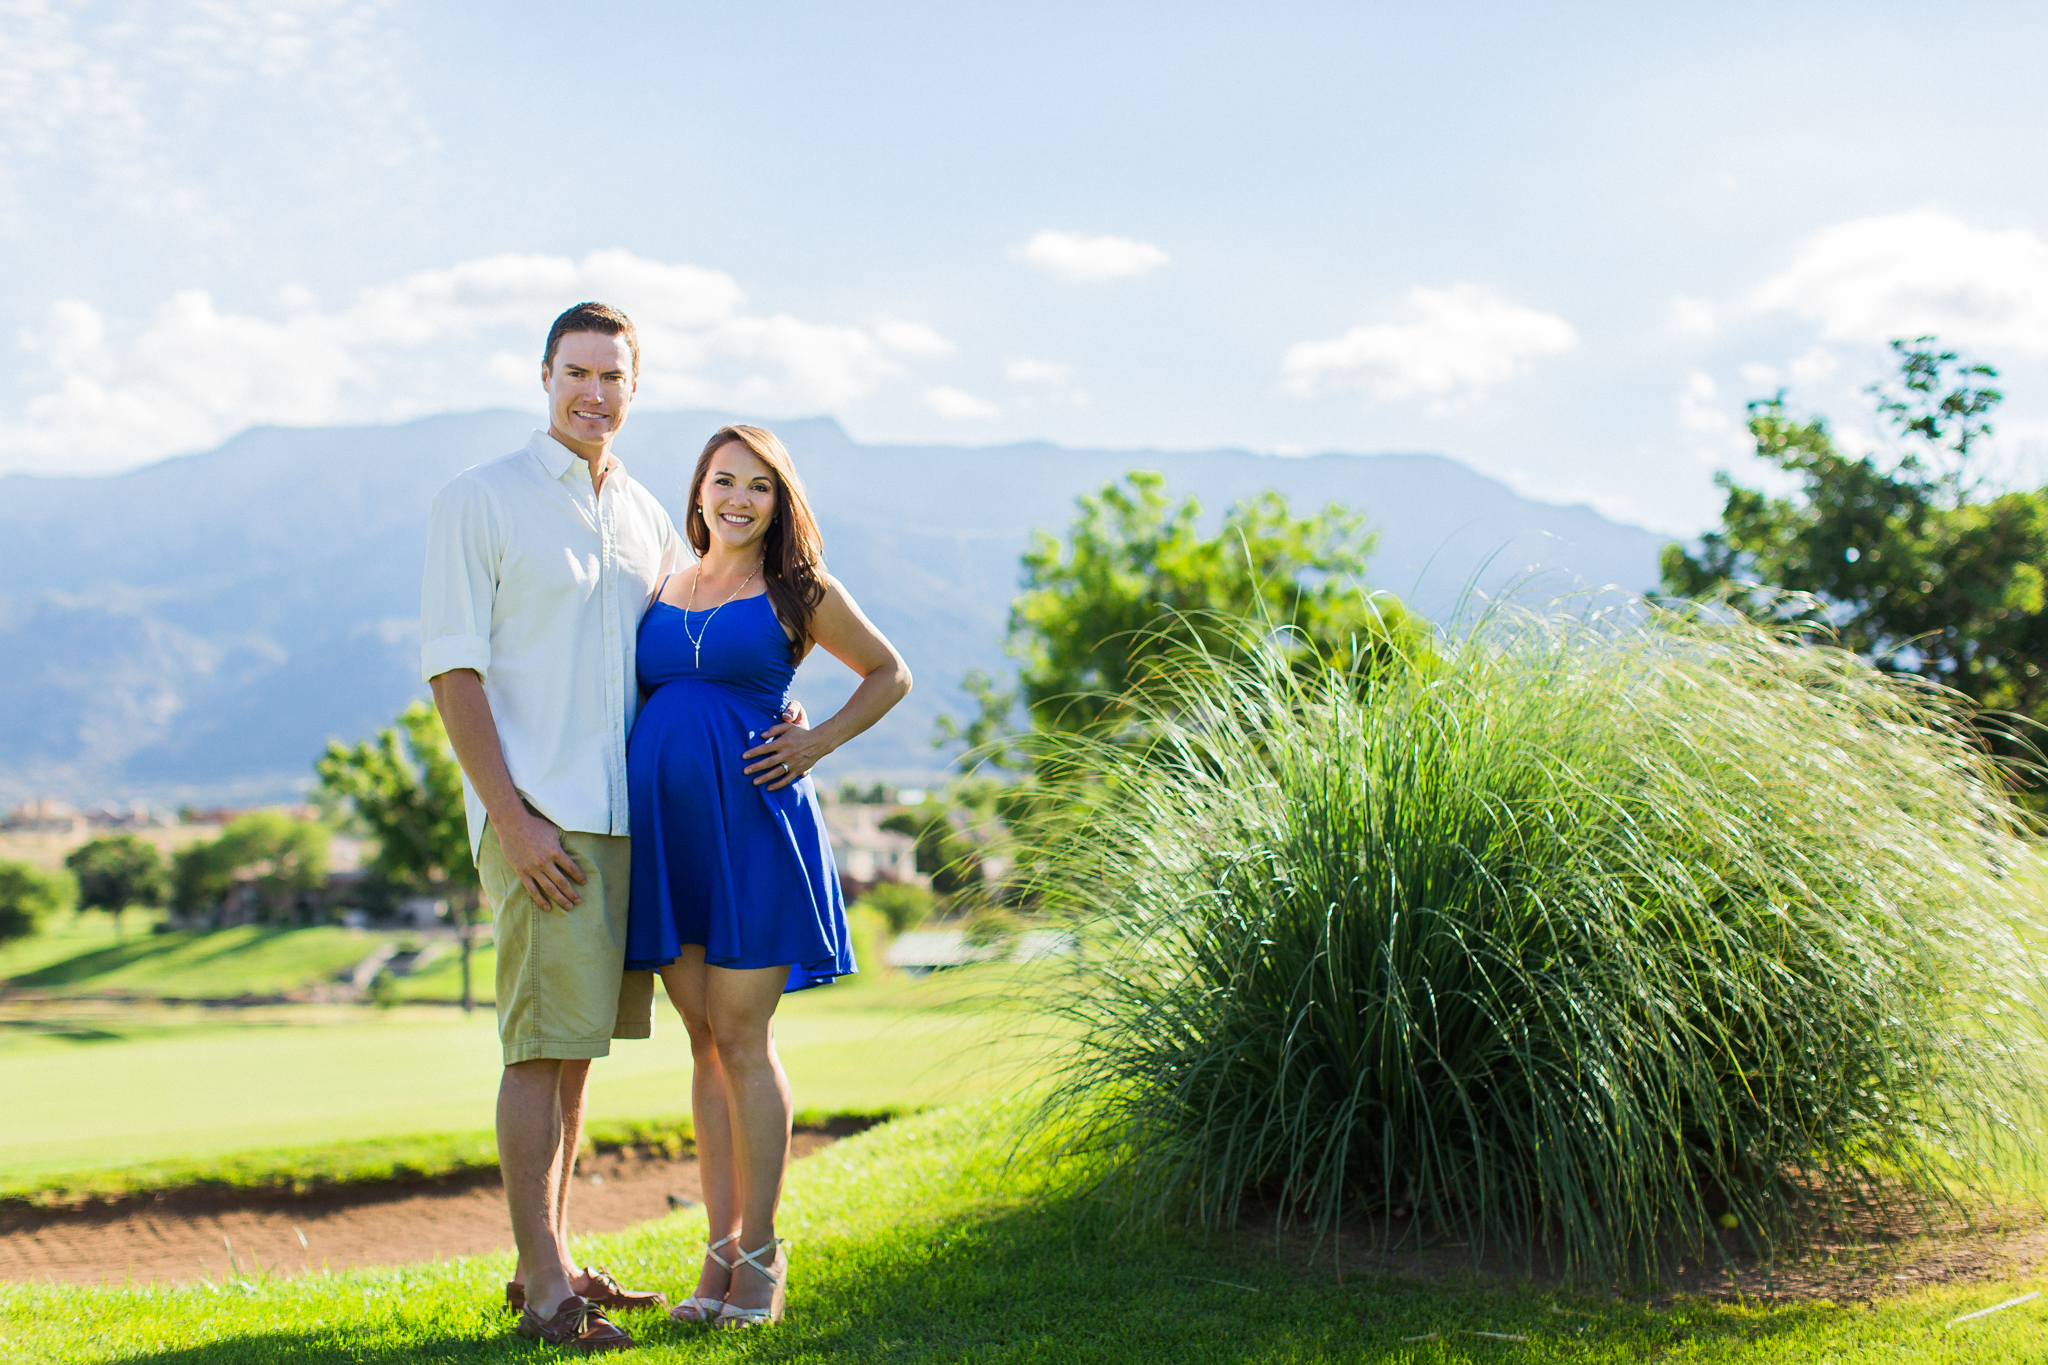 A Golf Course Maternity Session